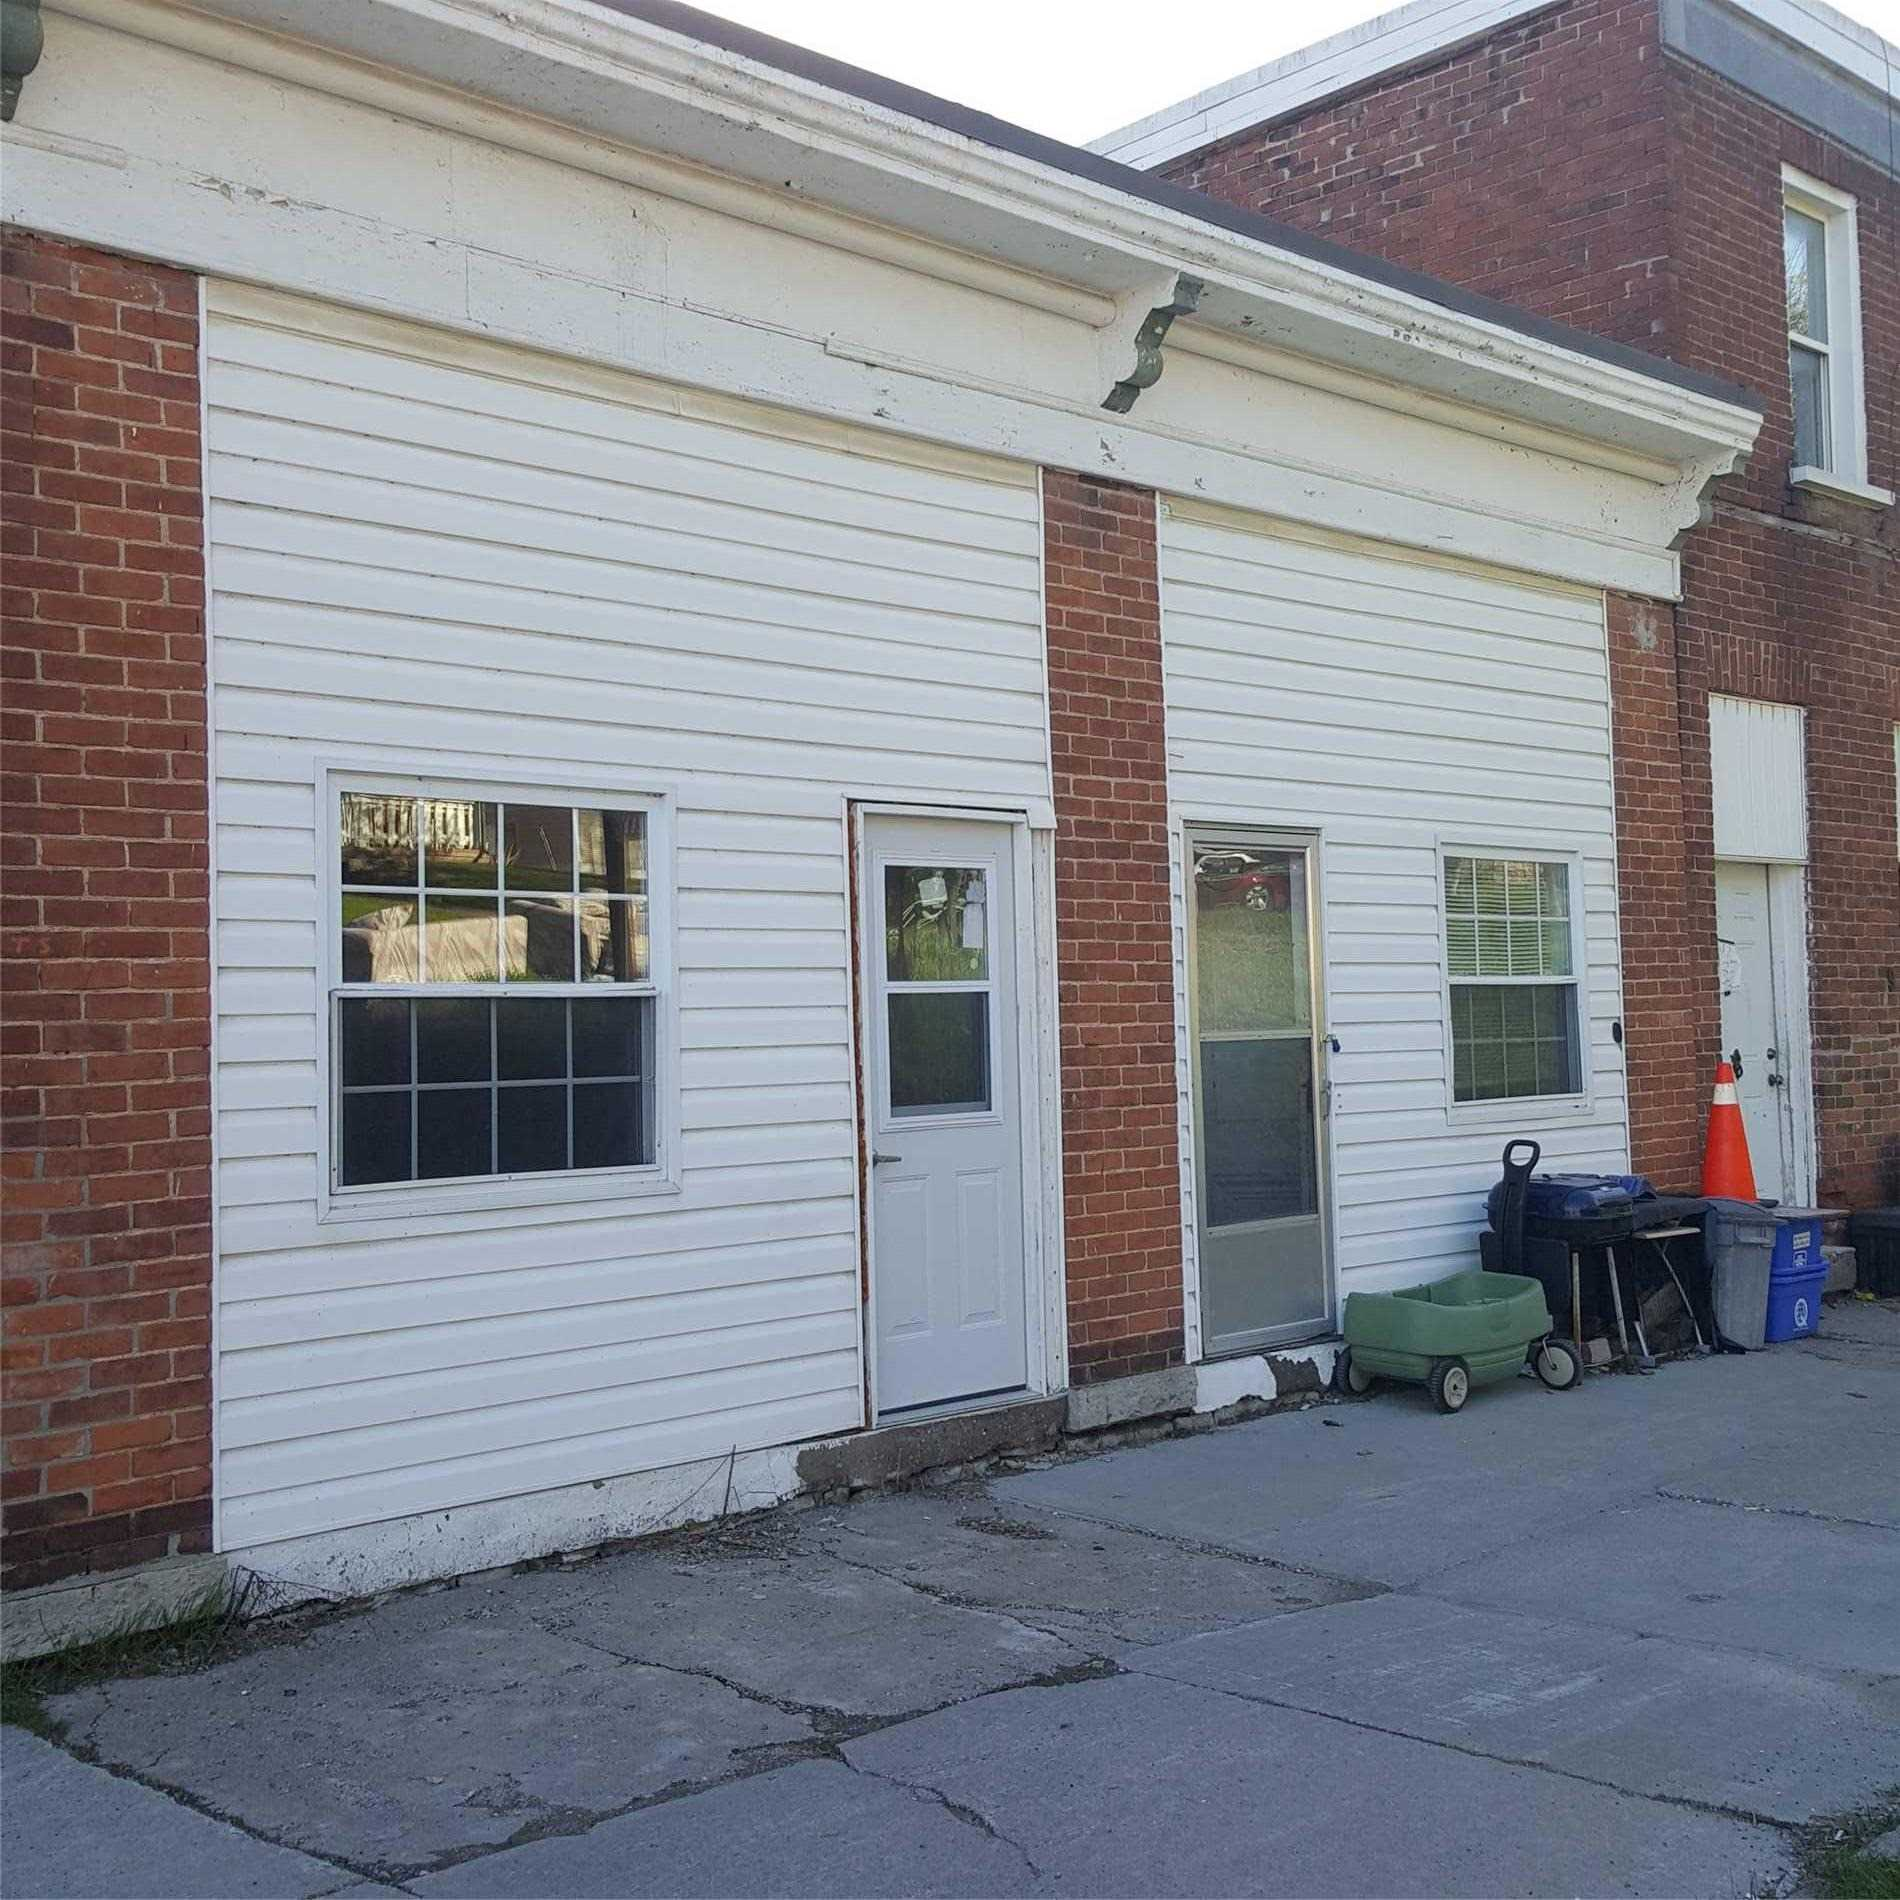 Attention Investors!!  Endless Possibilities With This Legal Side By Side Duplex Zoned R2 In Historic Marmora.  Marmora Boasts Low Vacancy Rates And Will Have No Problem Being Rented.  Have Someone Help Pay Your Mortgage By Living In One Unit And Renting Out The Other Or Rent Out Both For Great Cash Flow.  Situated Along The Main Strip.  Property Will Need Work. Vendor Willing To Help Arrange Mortgage For The Property.